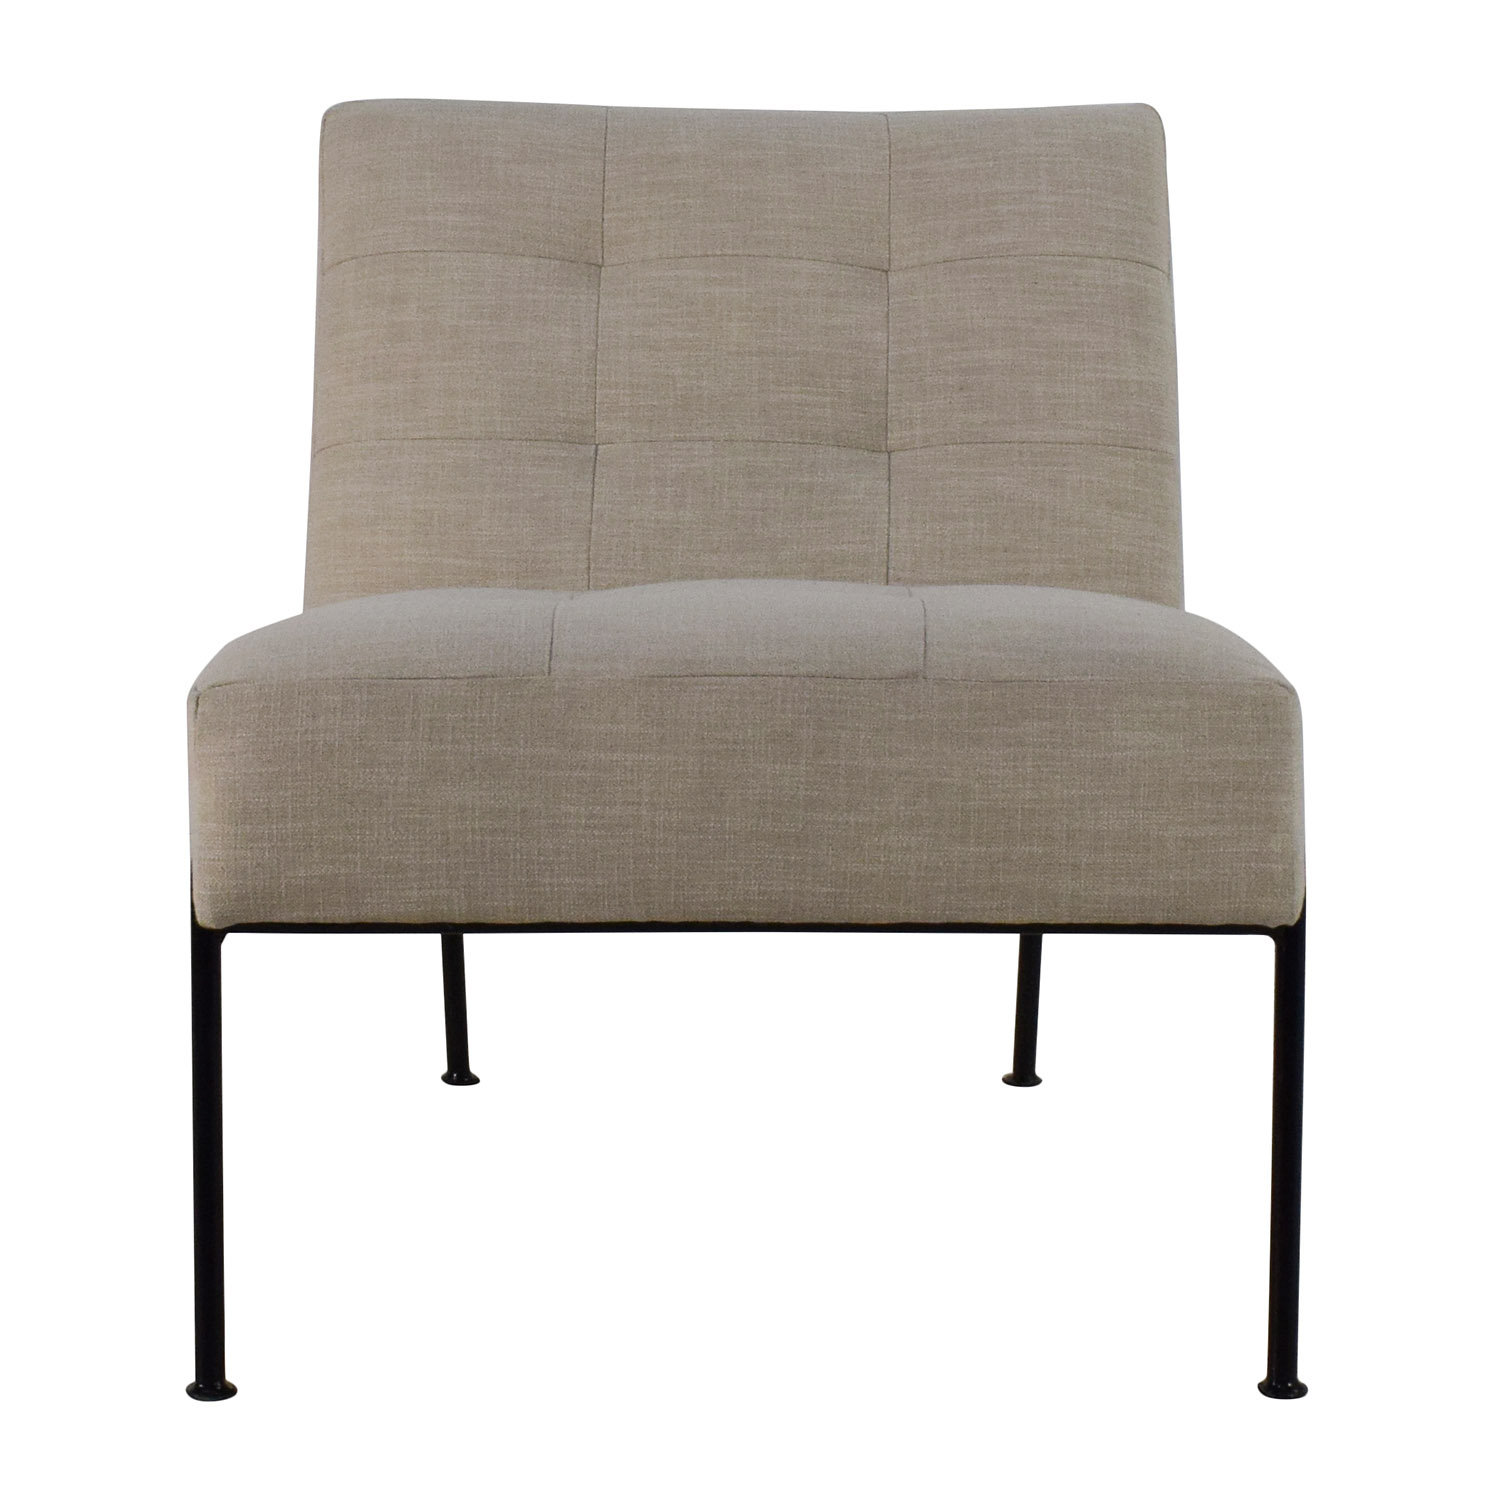 54 Off West Elm West Elm Oswald Tufted Slipper Chair